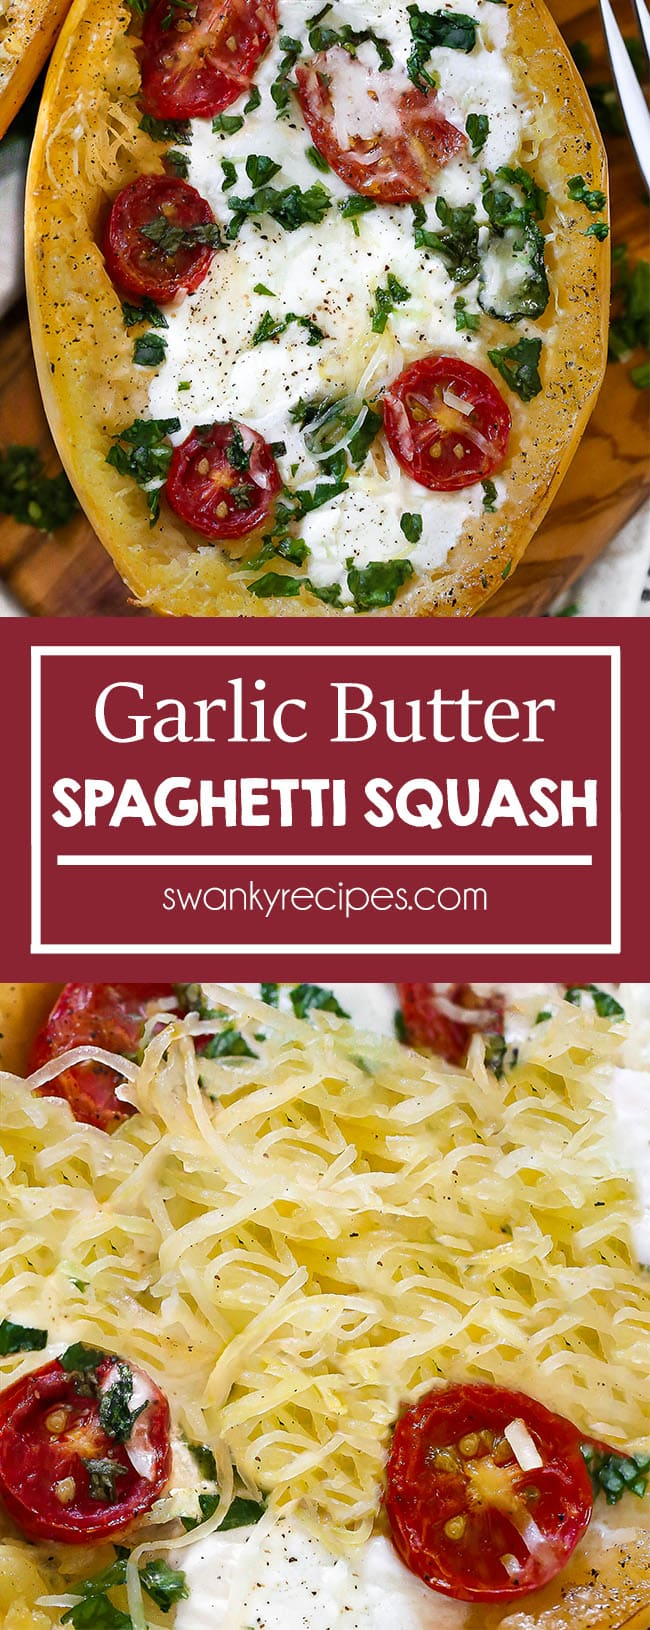 Garlic Butter Spaghetti Squash - Buttery, cheesy spaghetti squash oven roasted and filled with mozzarella, parmesan cheese, spinach, and tomatoes. A healthy dinner recipe idea.